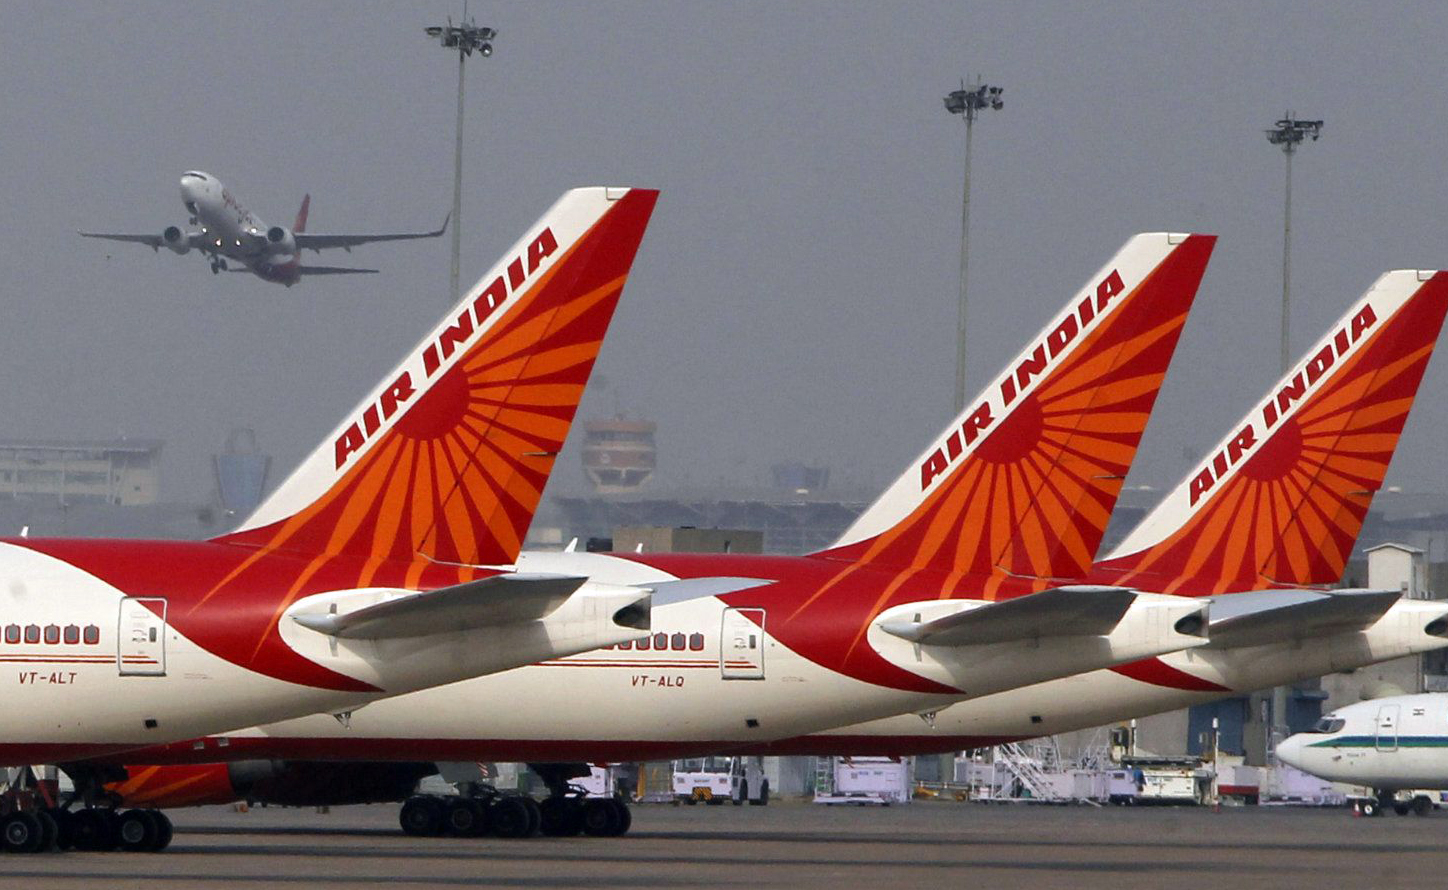 India's national carrier succumbs to Beijing's 'one China' policy dictate